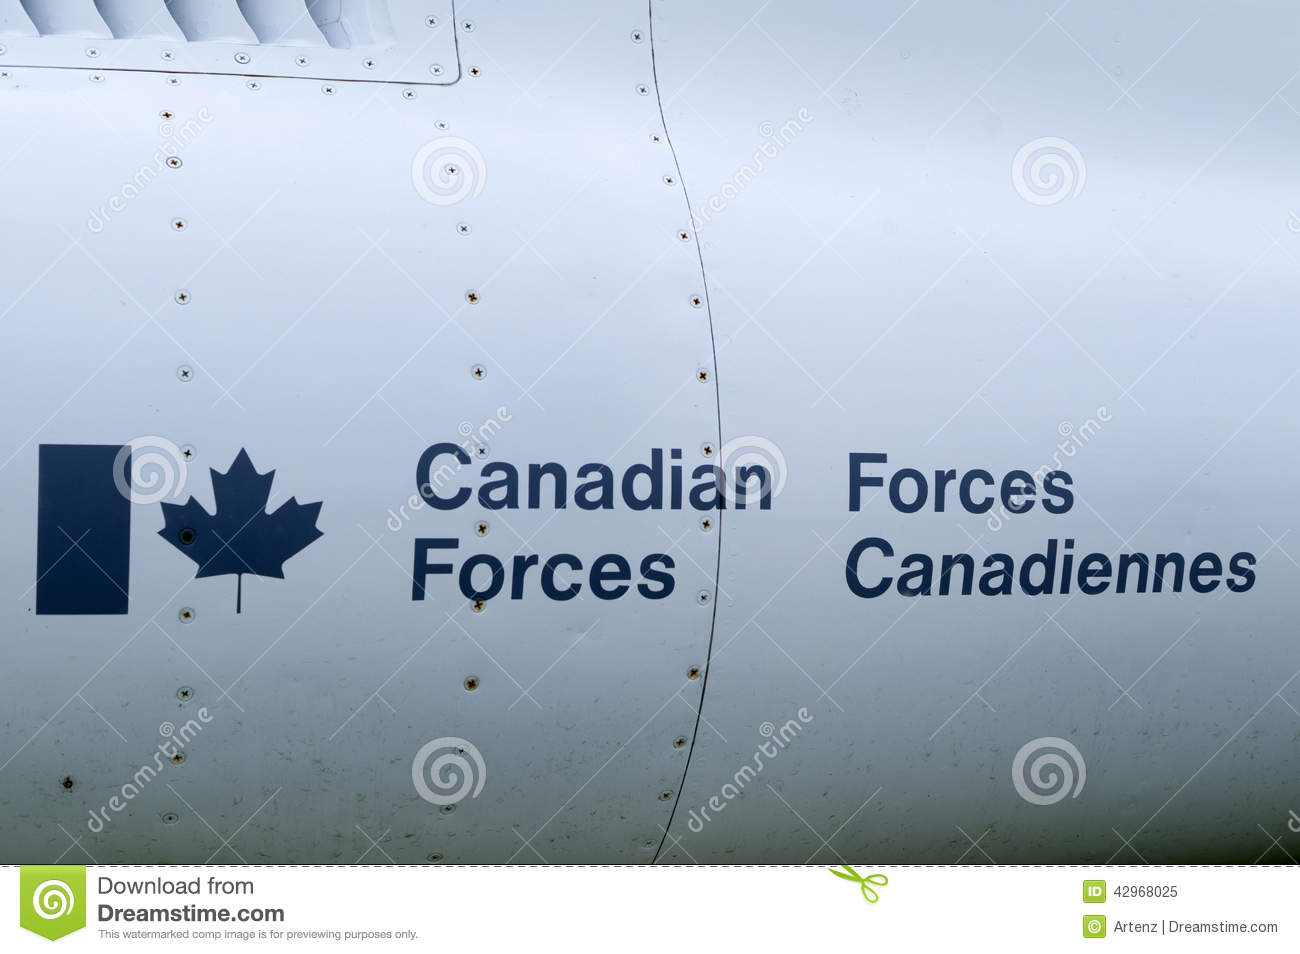 Is canada too close of an